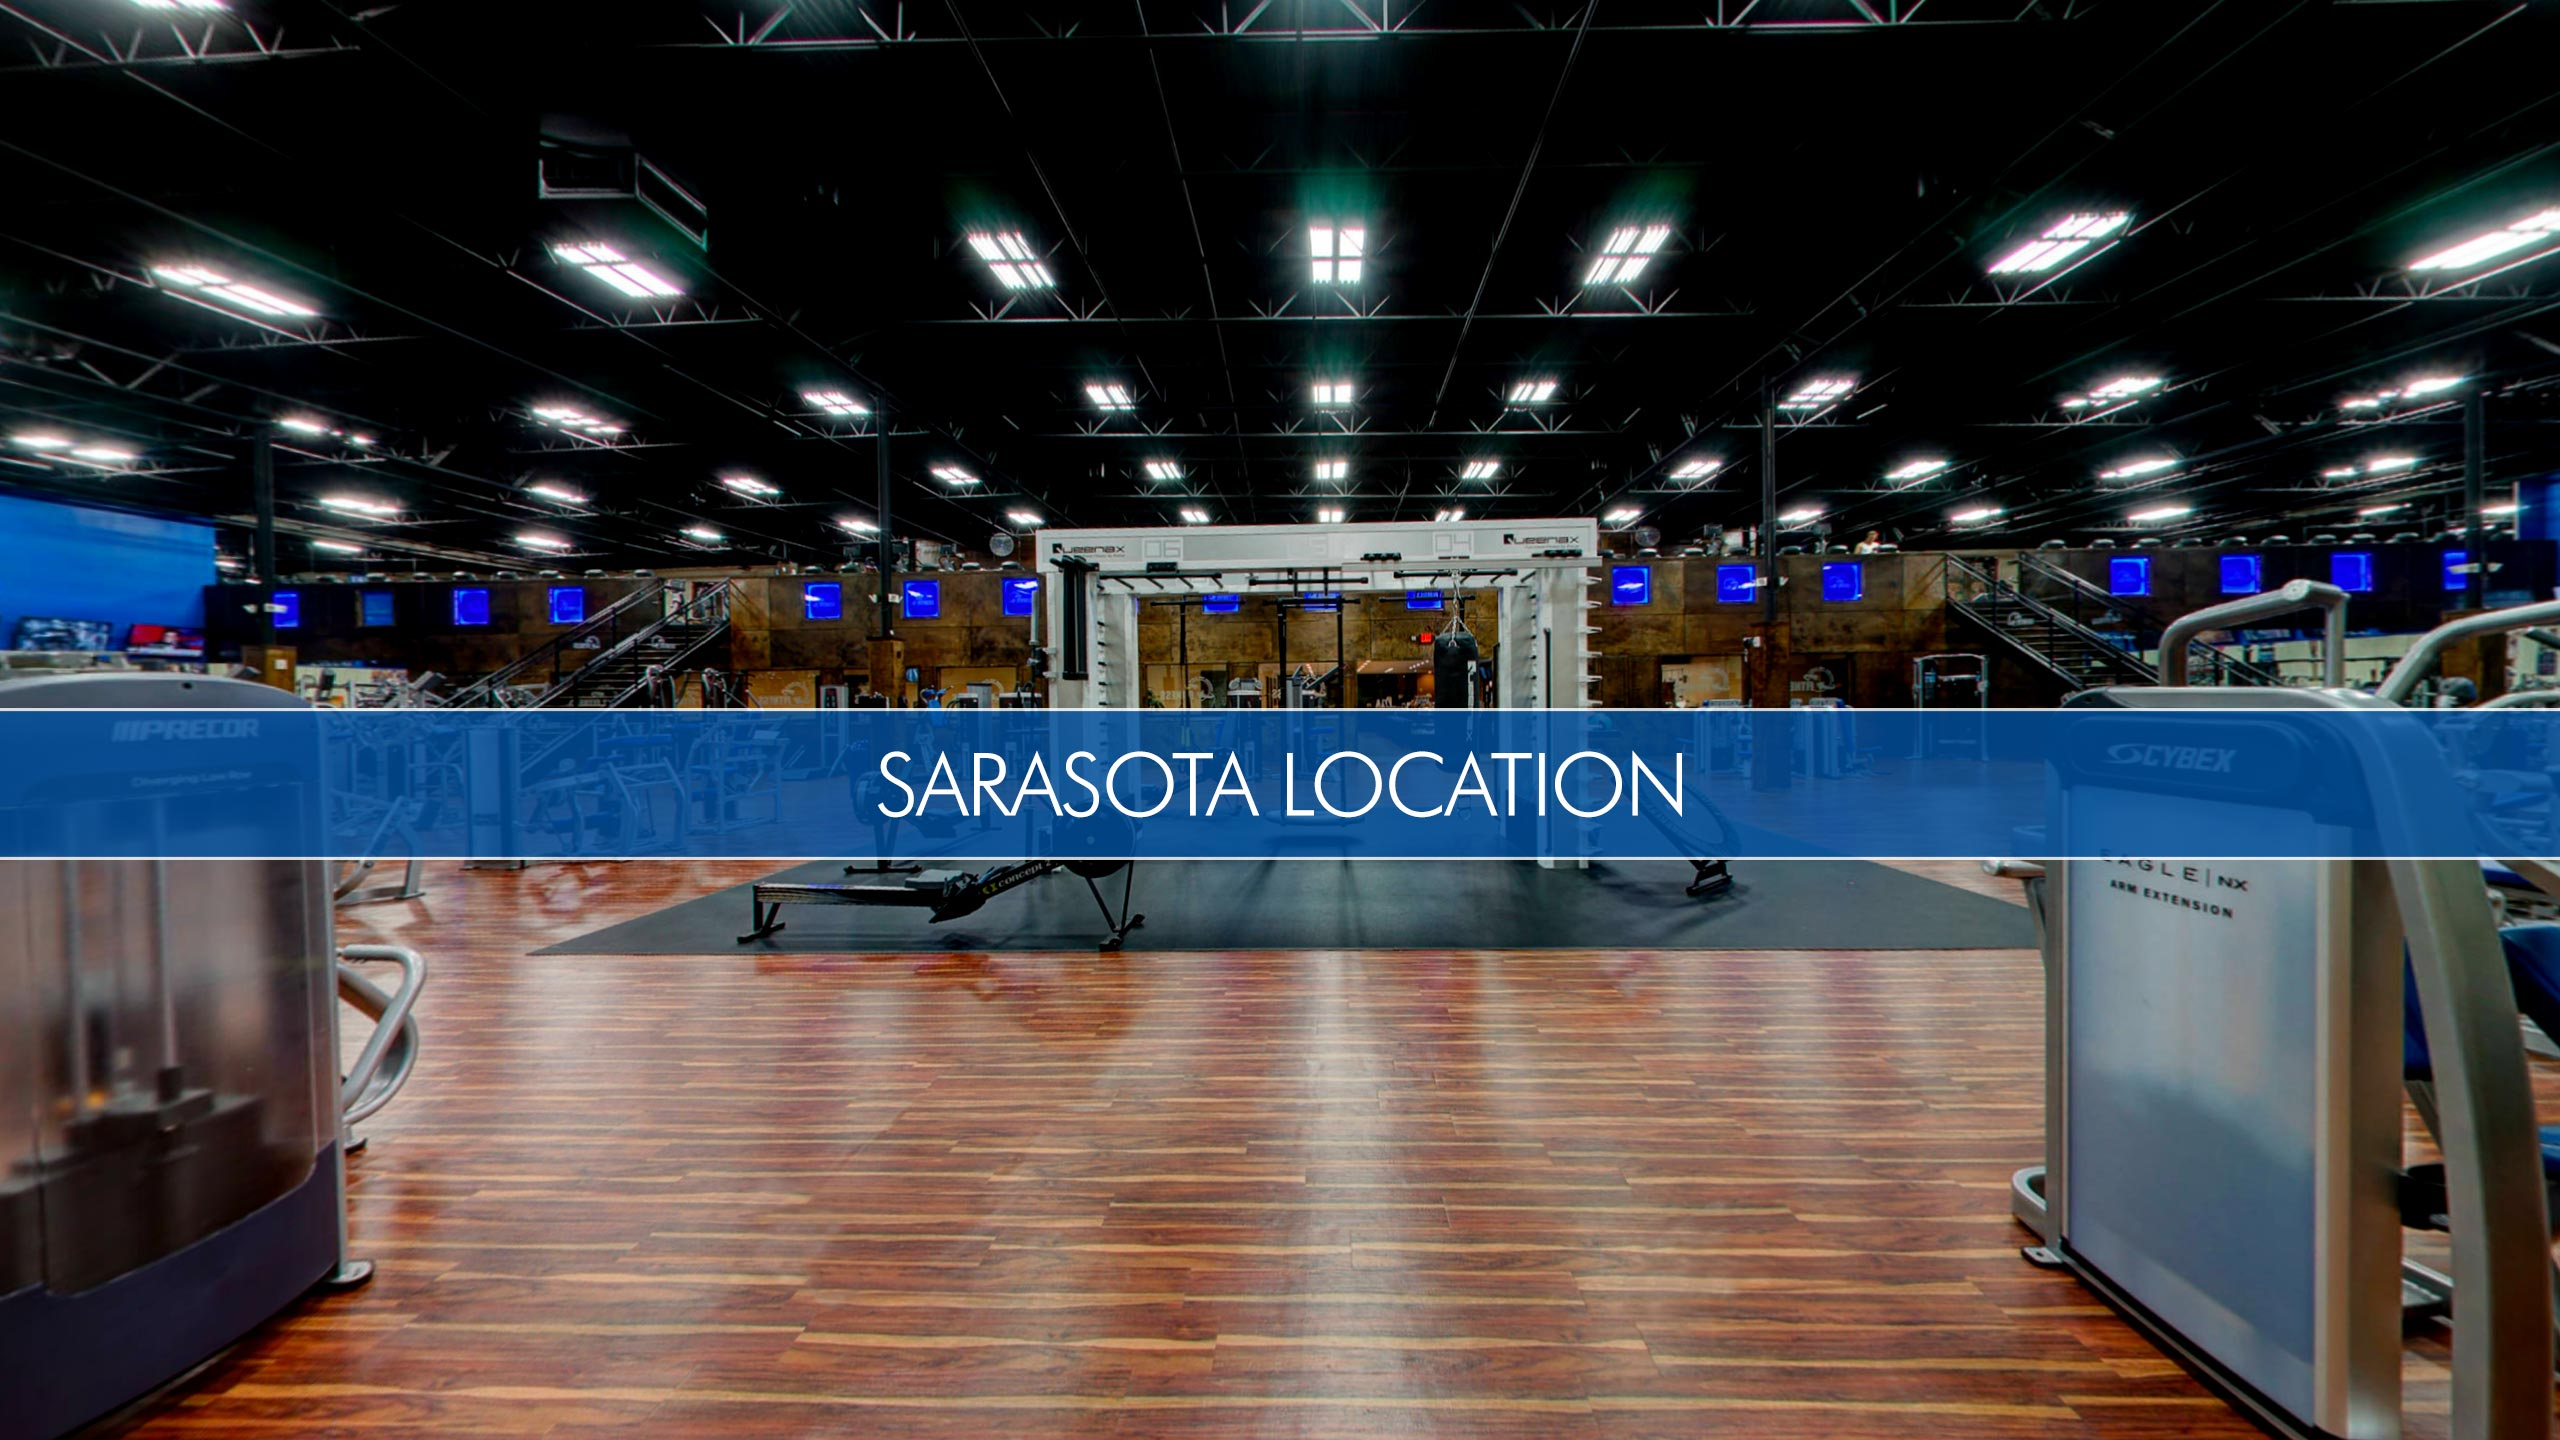 Sarasota Location